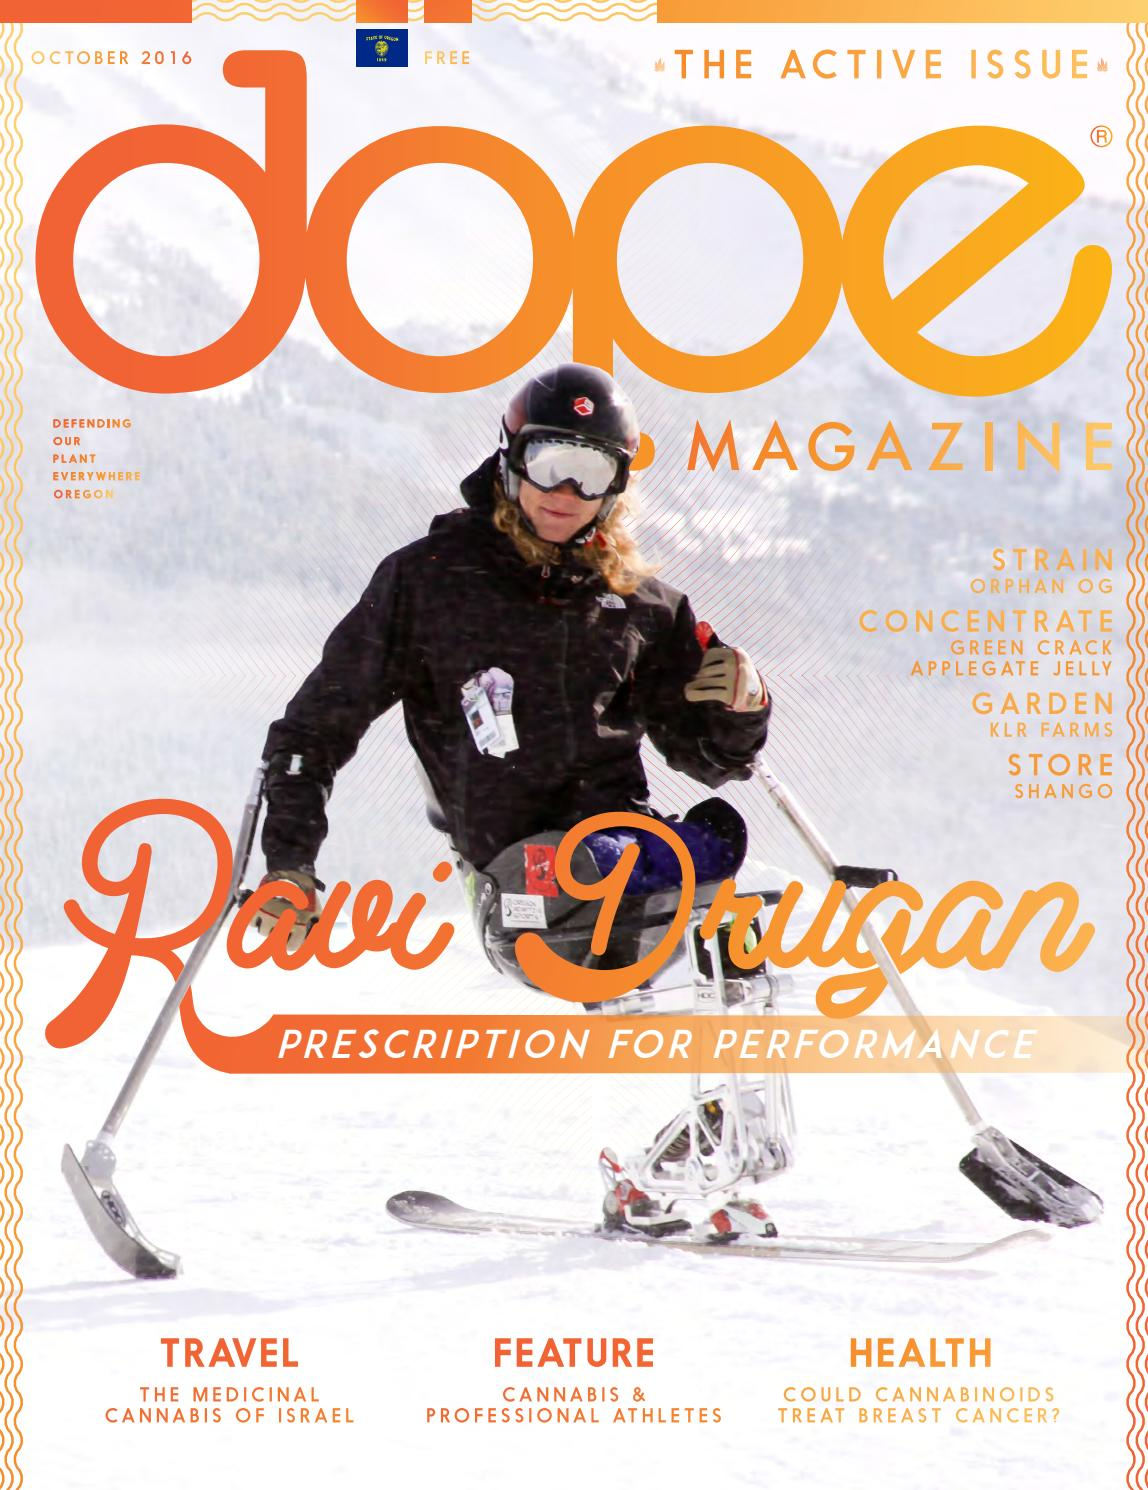 Dope Magazine - October 2016 - The Active Issue - Oregon by